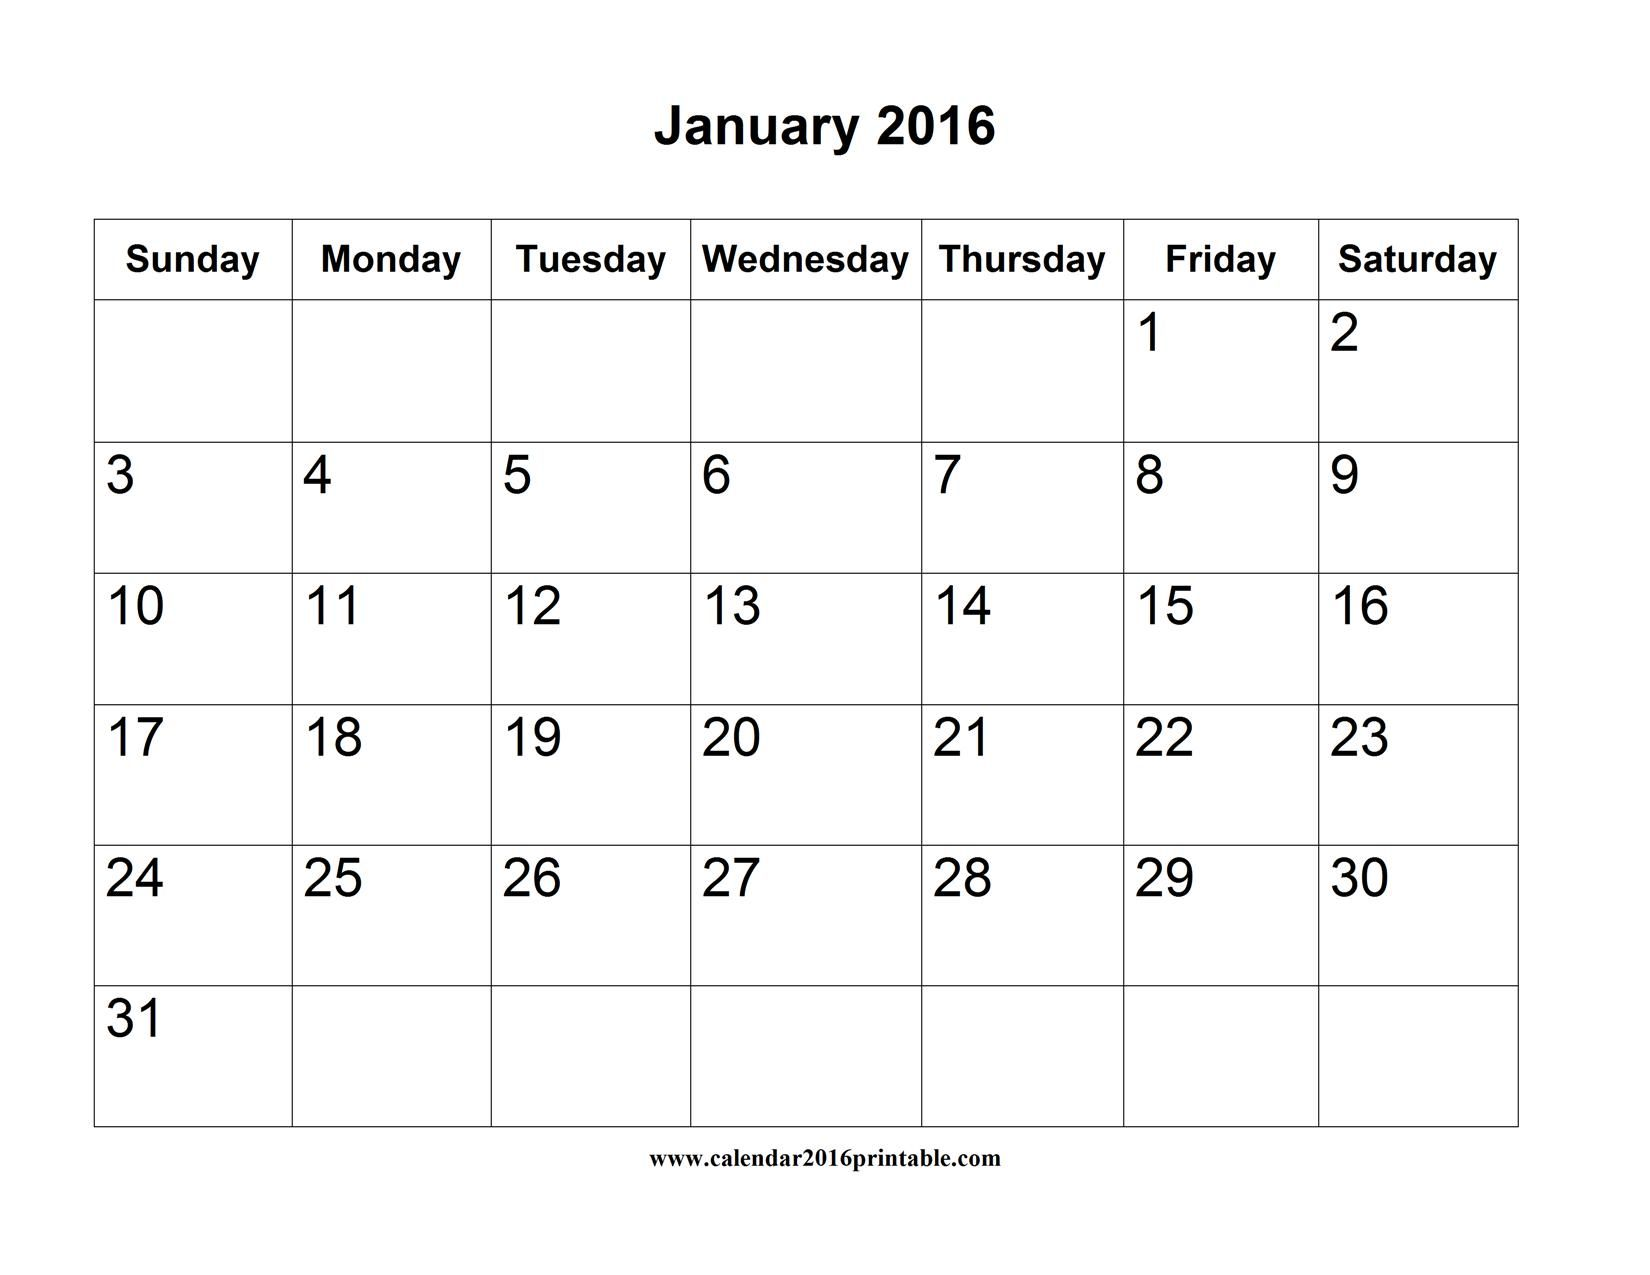 january 2016 calendar printable word free to download and print